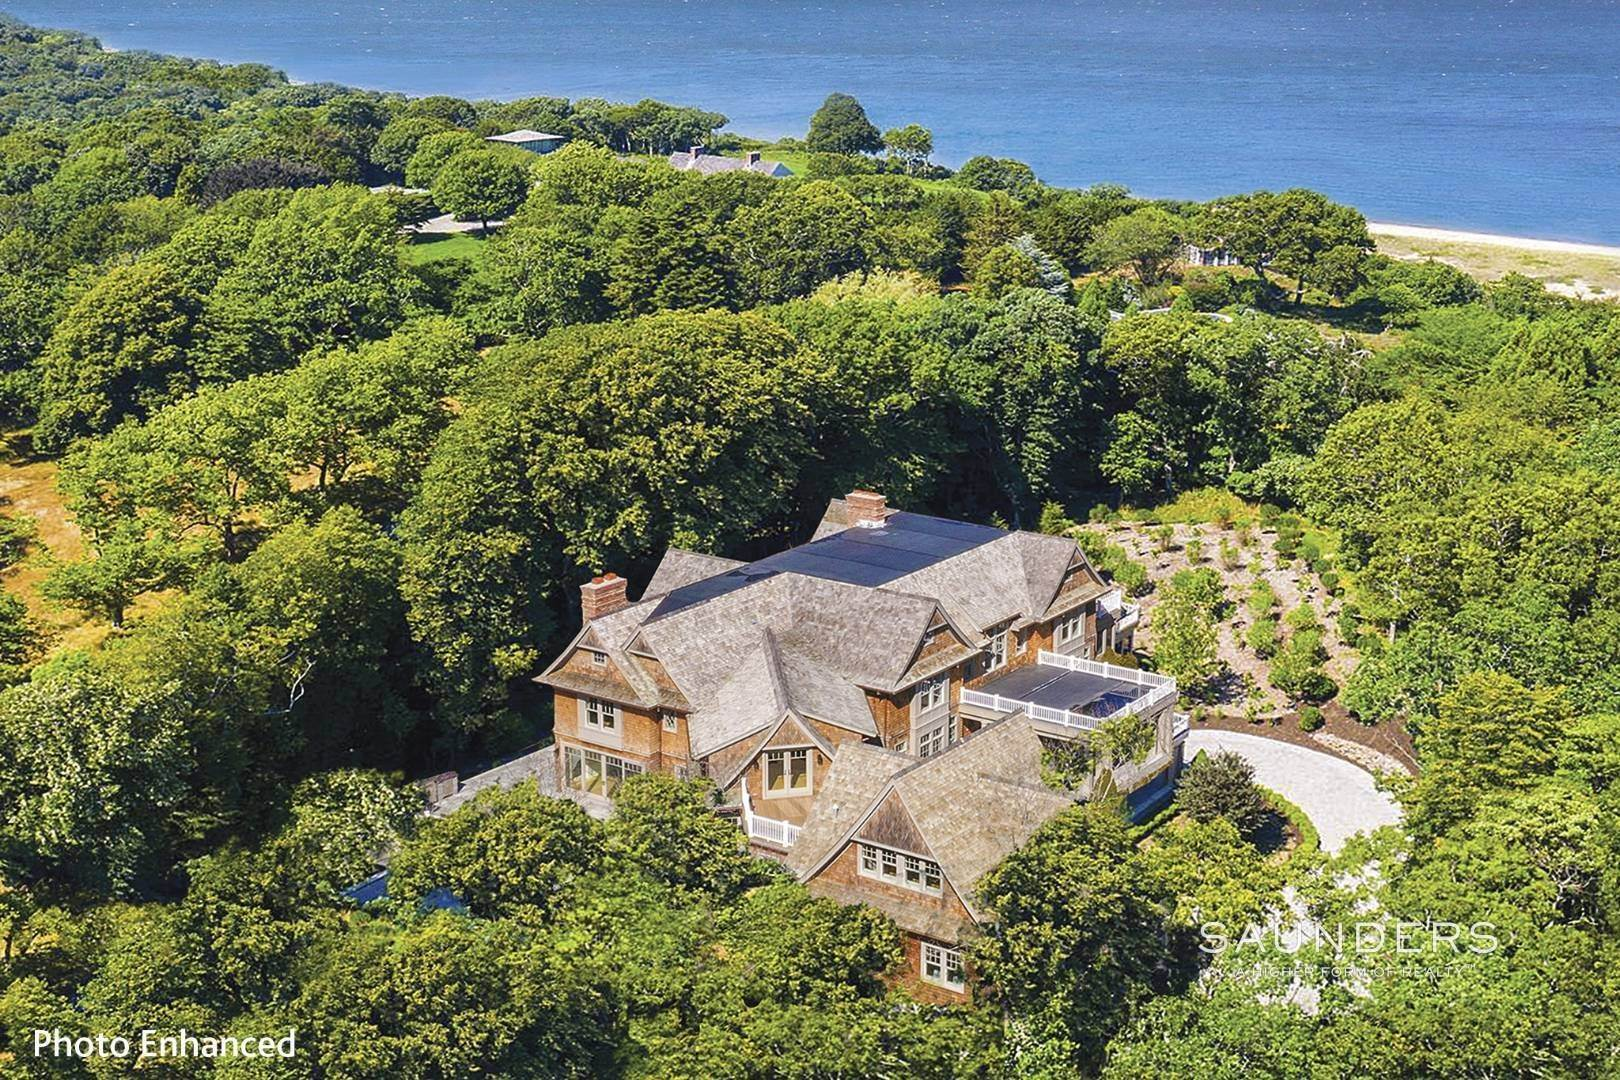 Single Family Homes for Sale at Luxury New Construction By The Bay In Amagansett 57 Broadview Road, Amagansett, East Hampton Town, NY 11930